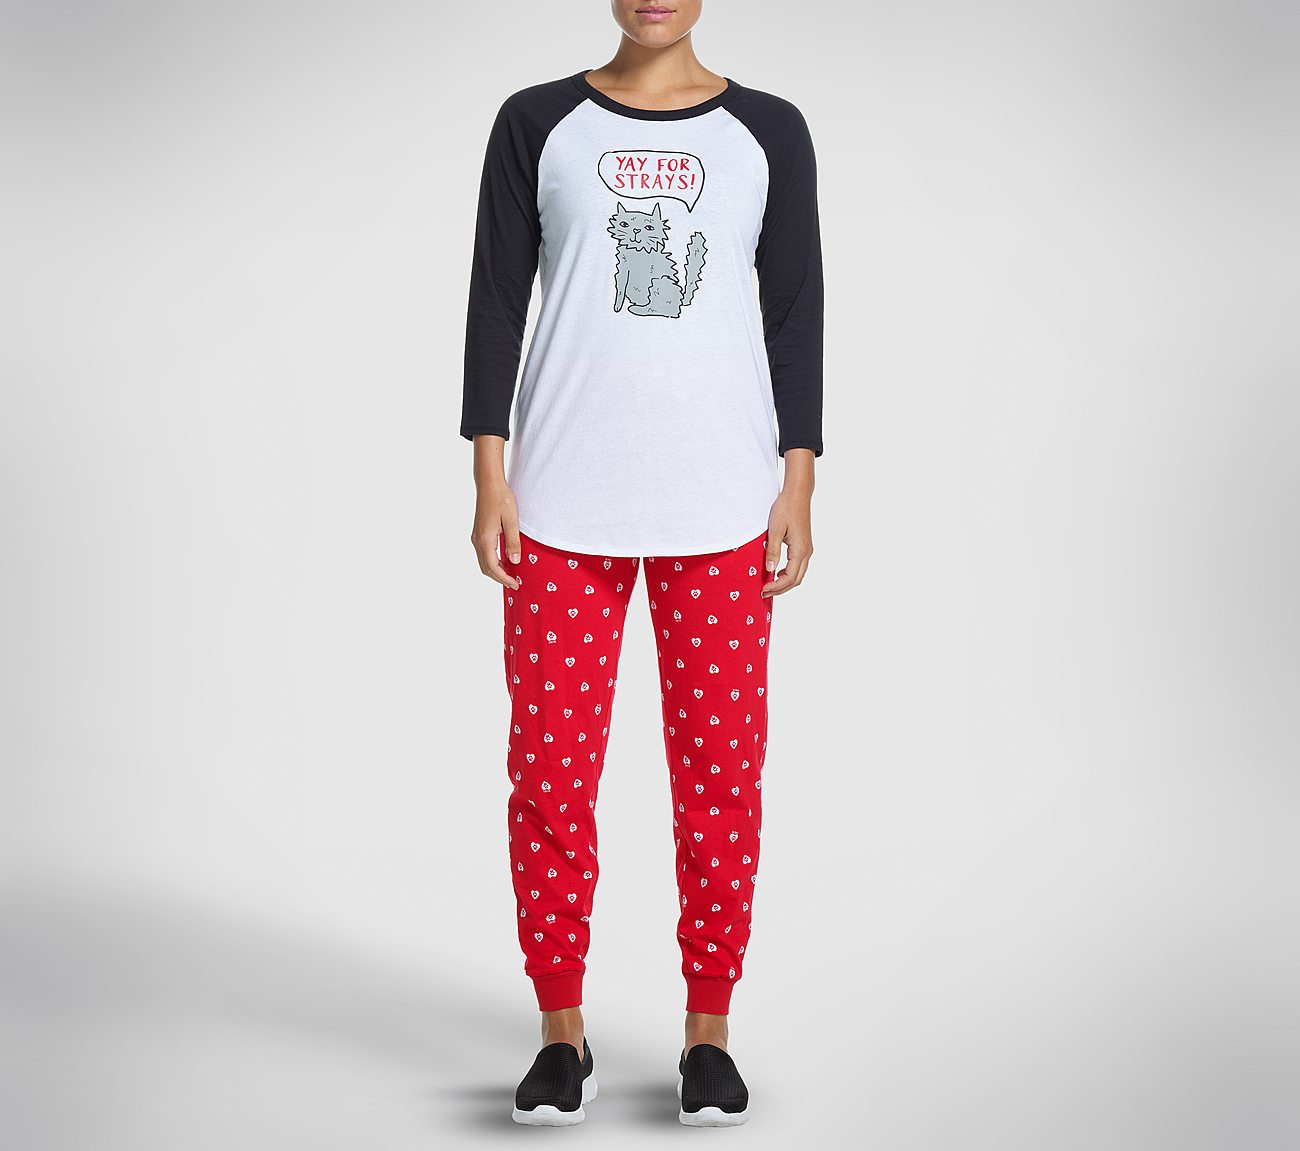 84a09f32dfd3 Buy SKECHERS Yay for Strays Pajama Set BOBS Shoes only $39.00